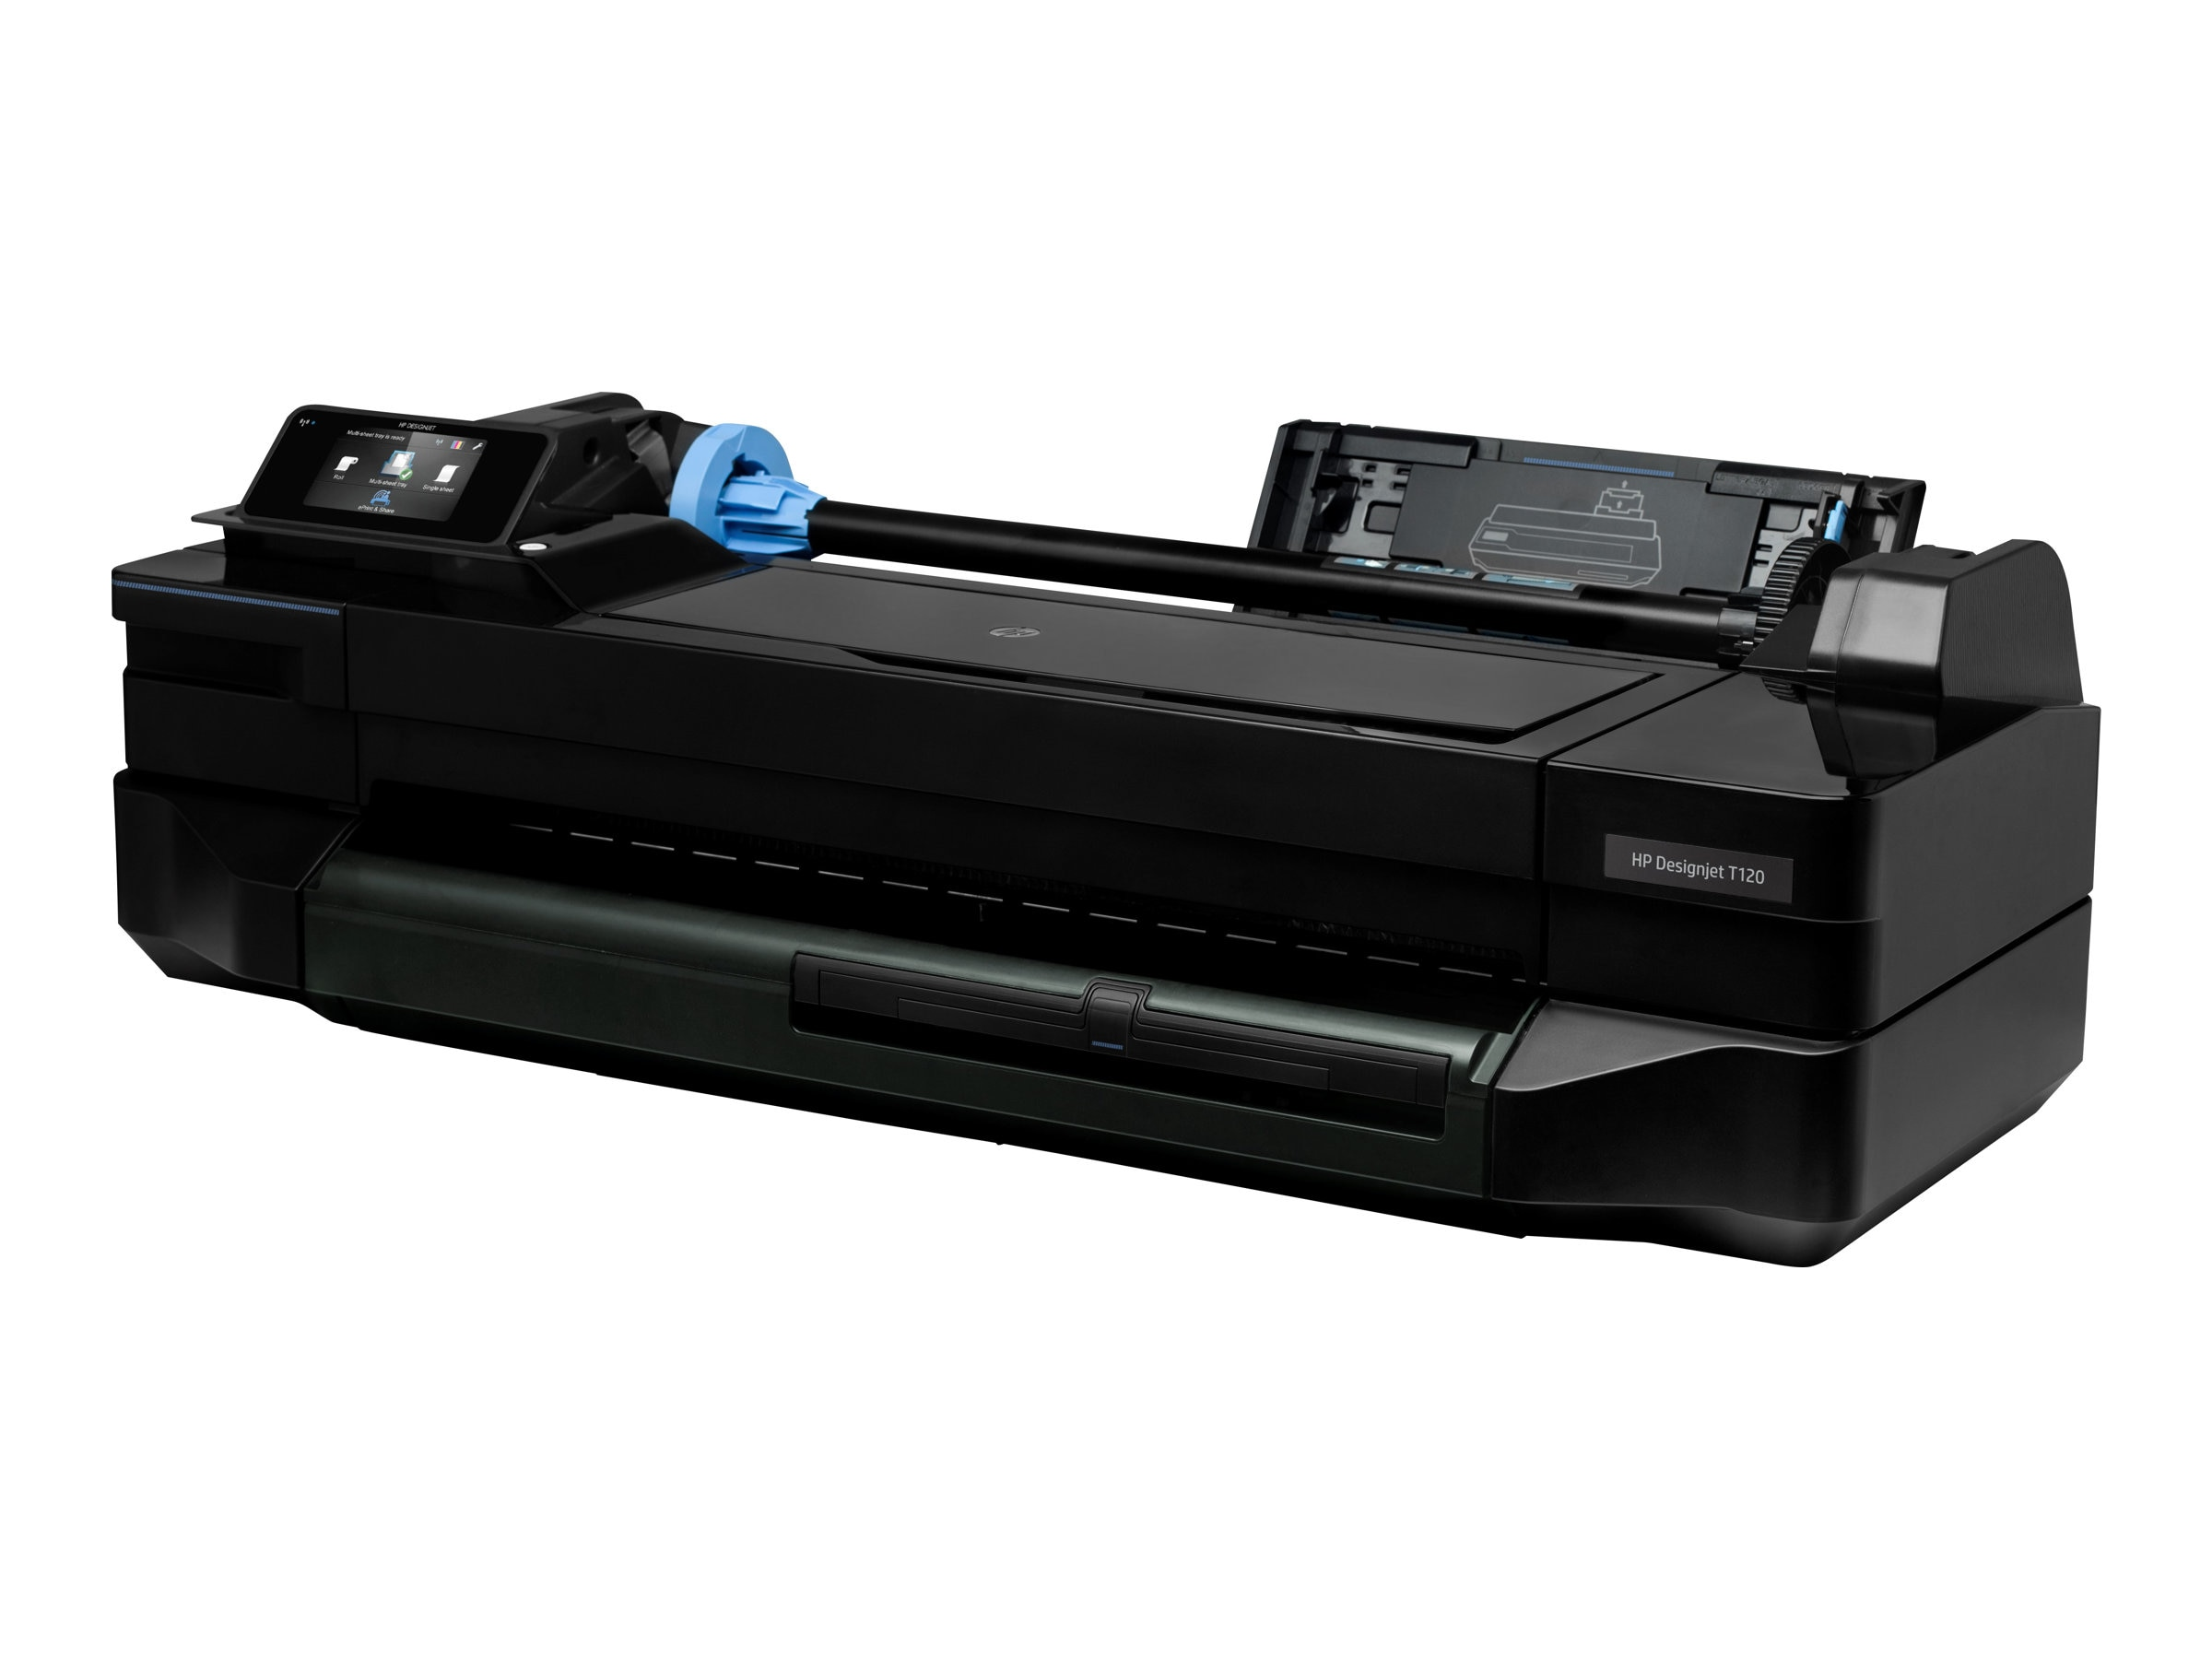 HP Designjet T120 ePrinter ($999 - $100 Instant Rebate = $899 Expires 2 15 16)